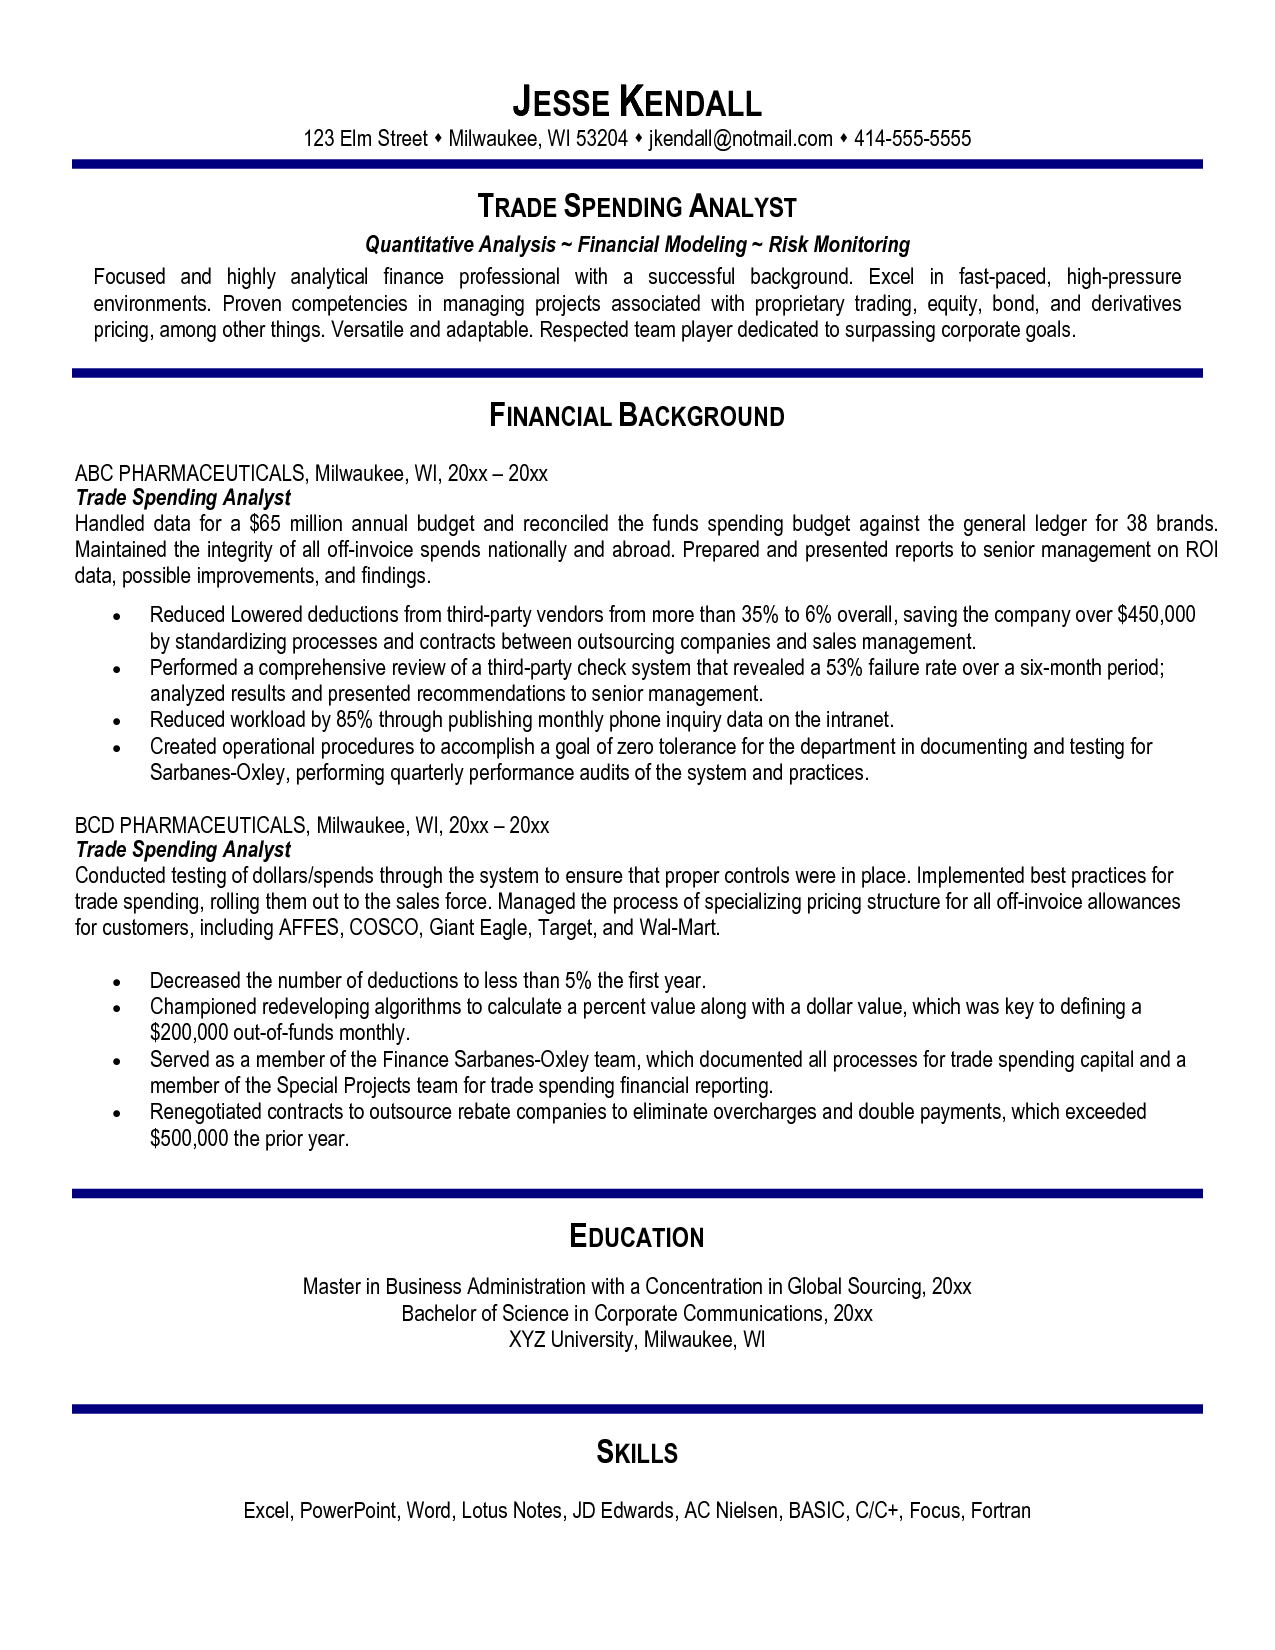 Proprietary Trading Resume Sample   Http://www.resumecareer.info/proprietary  Job Resume Samples